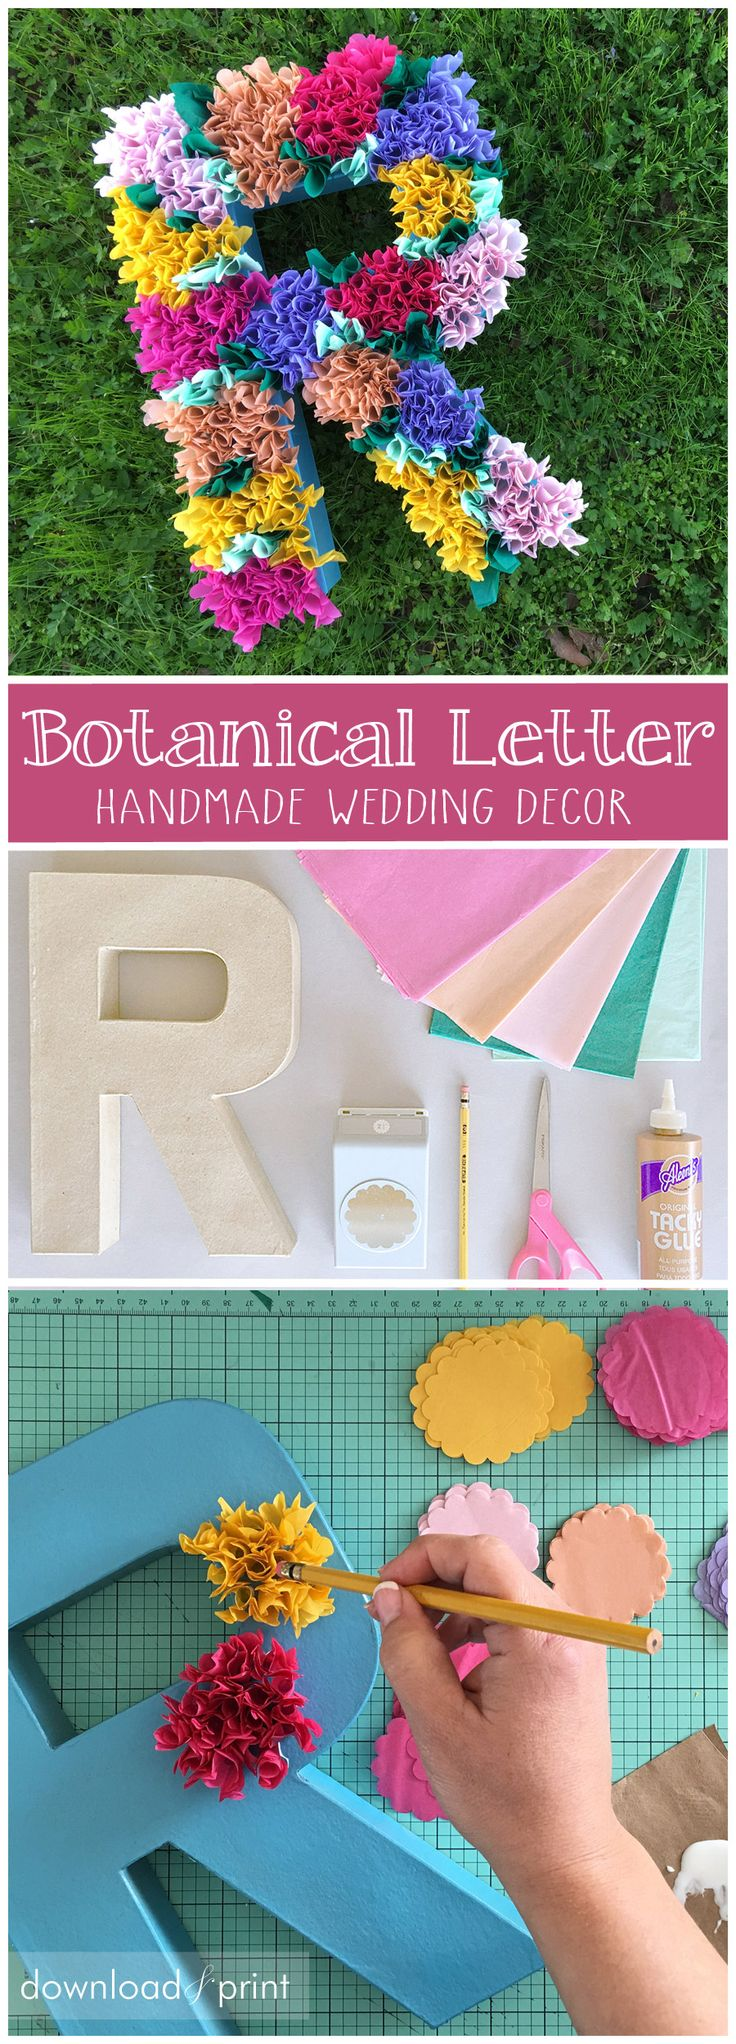 DIY floral letter... it's so easy! Takes a little time though, so set up for a Netflix binge. Perfect garden wedding decor, his and her initial with an ampersand.